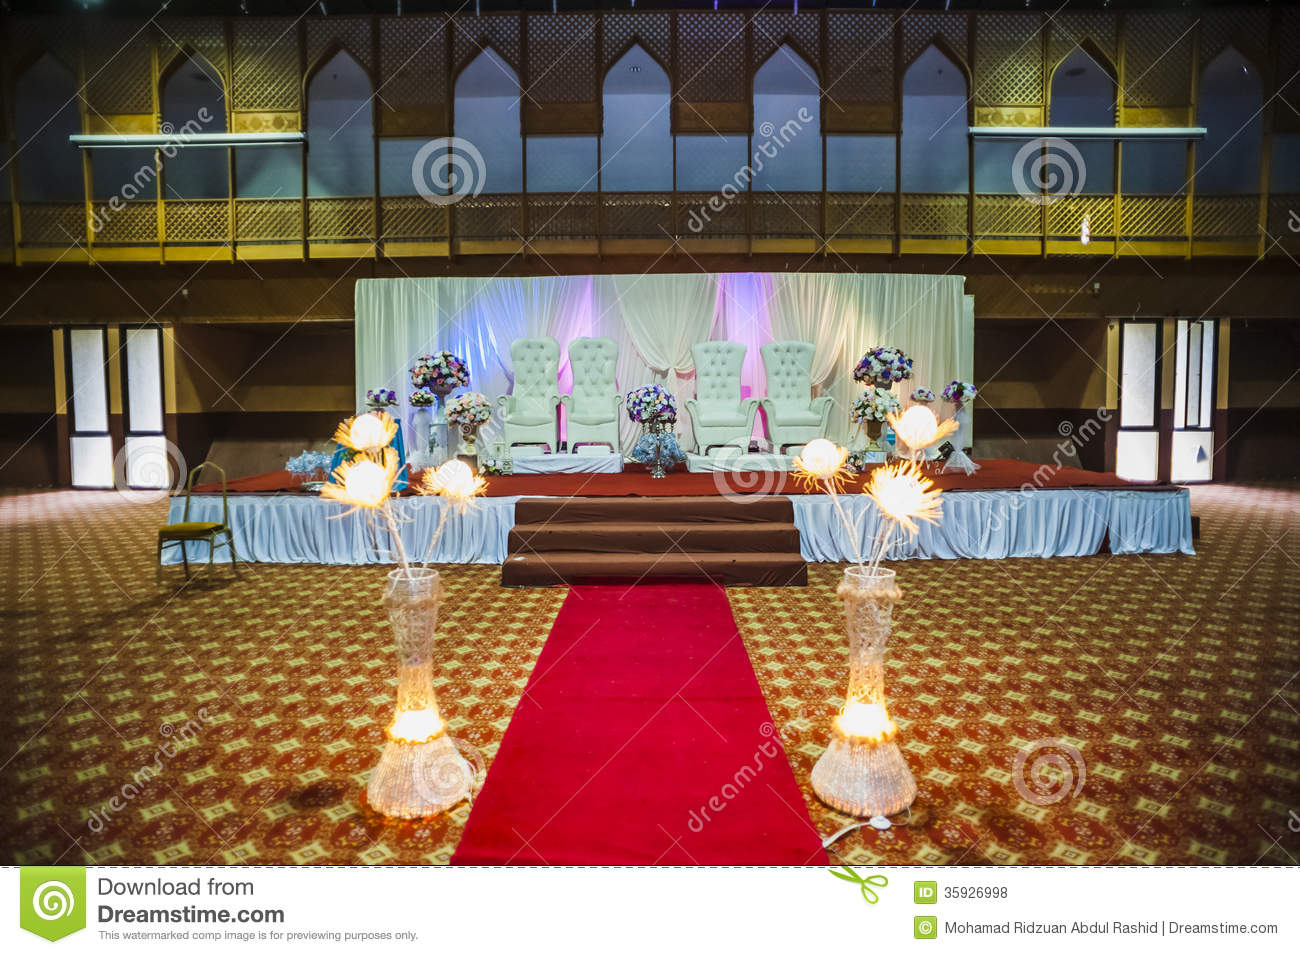 Wedding Hall Decoration Royalty Free Stock Photos - Image: 35926998